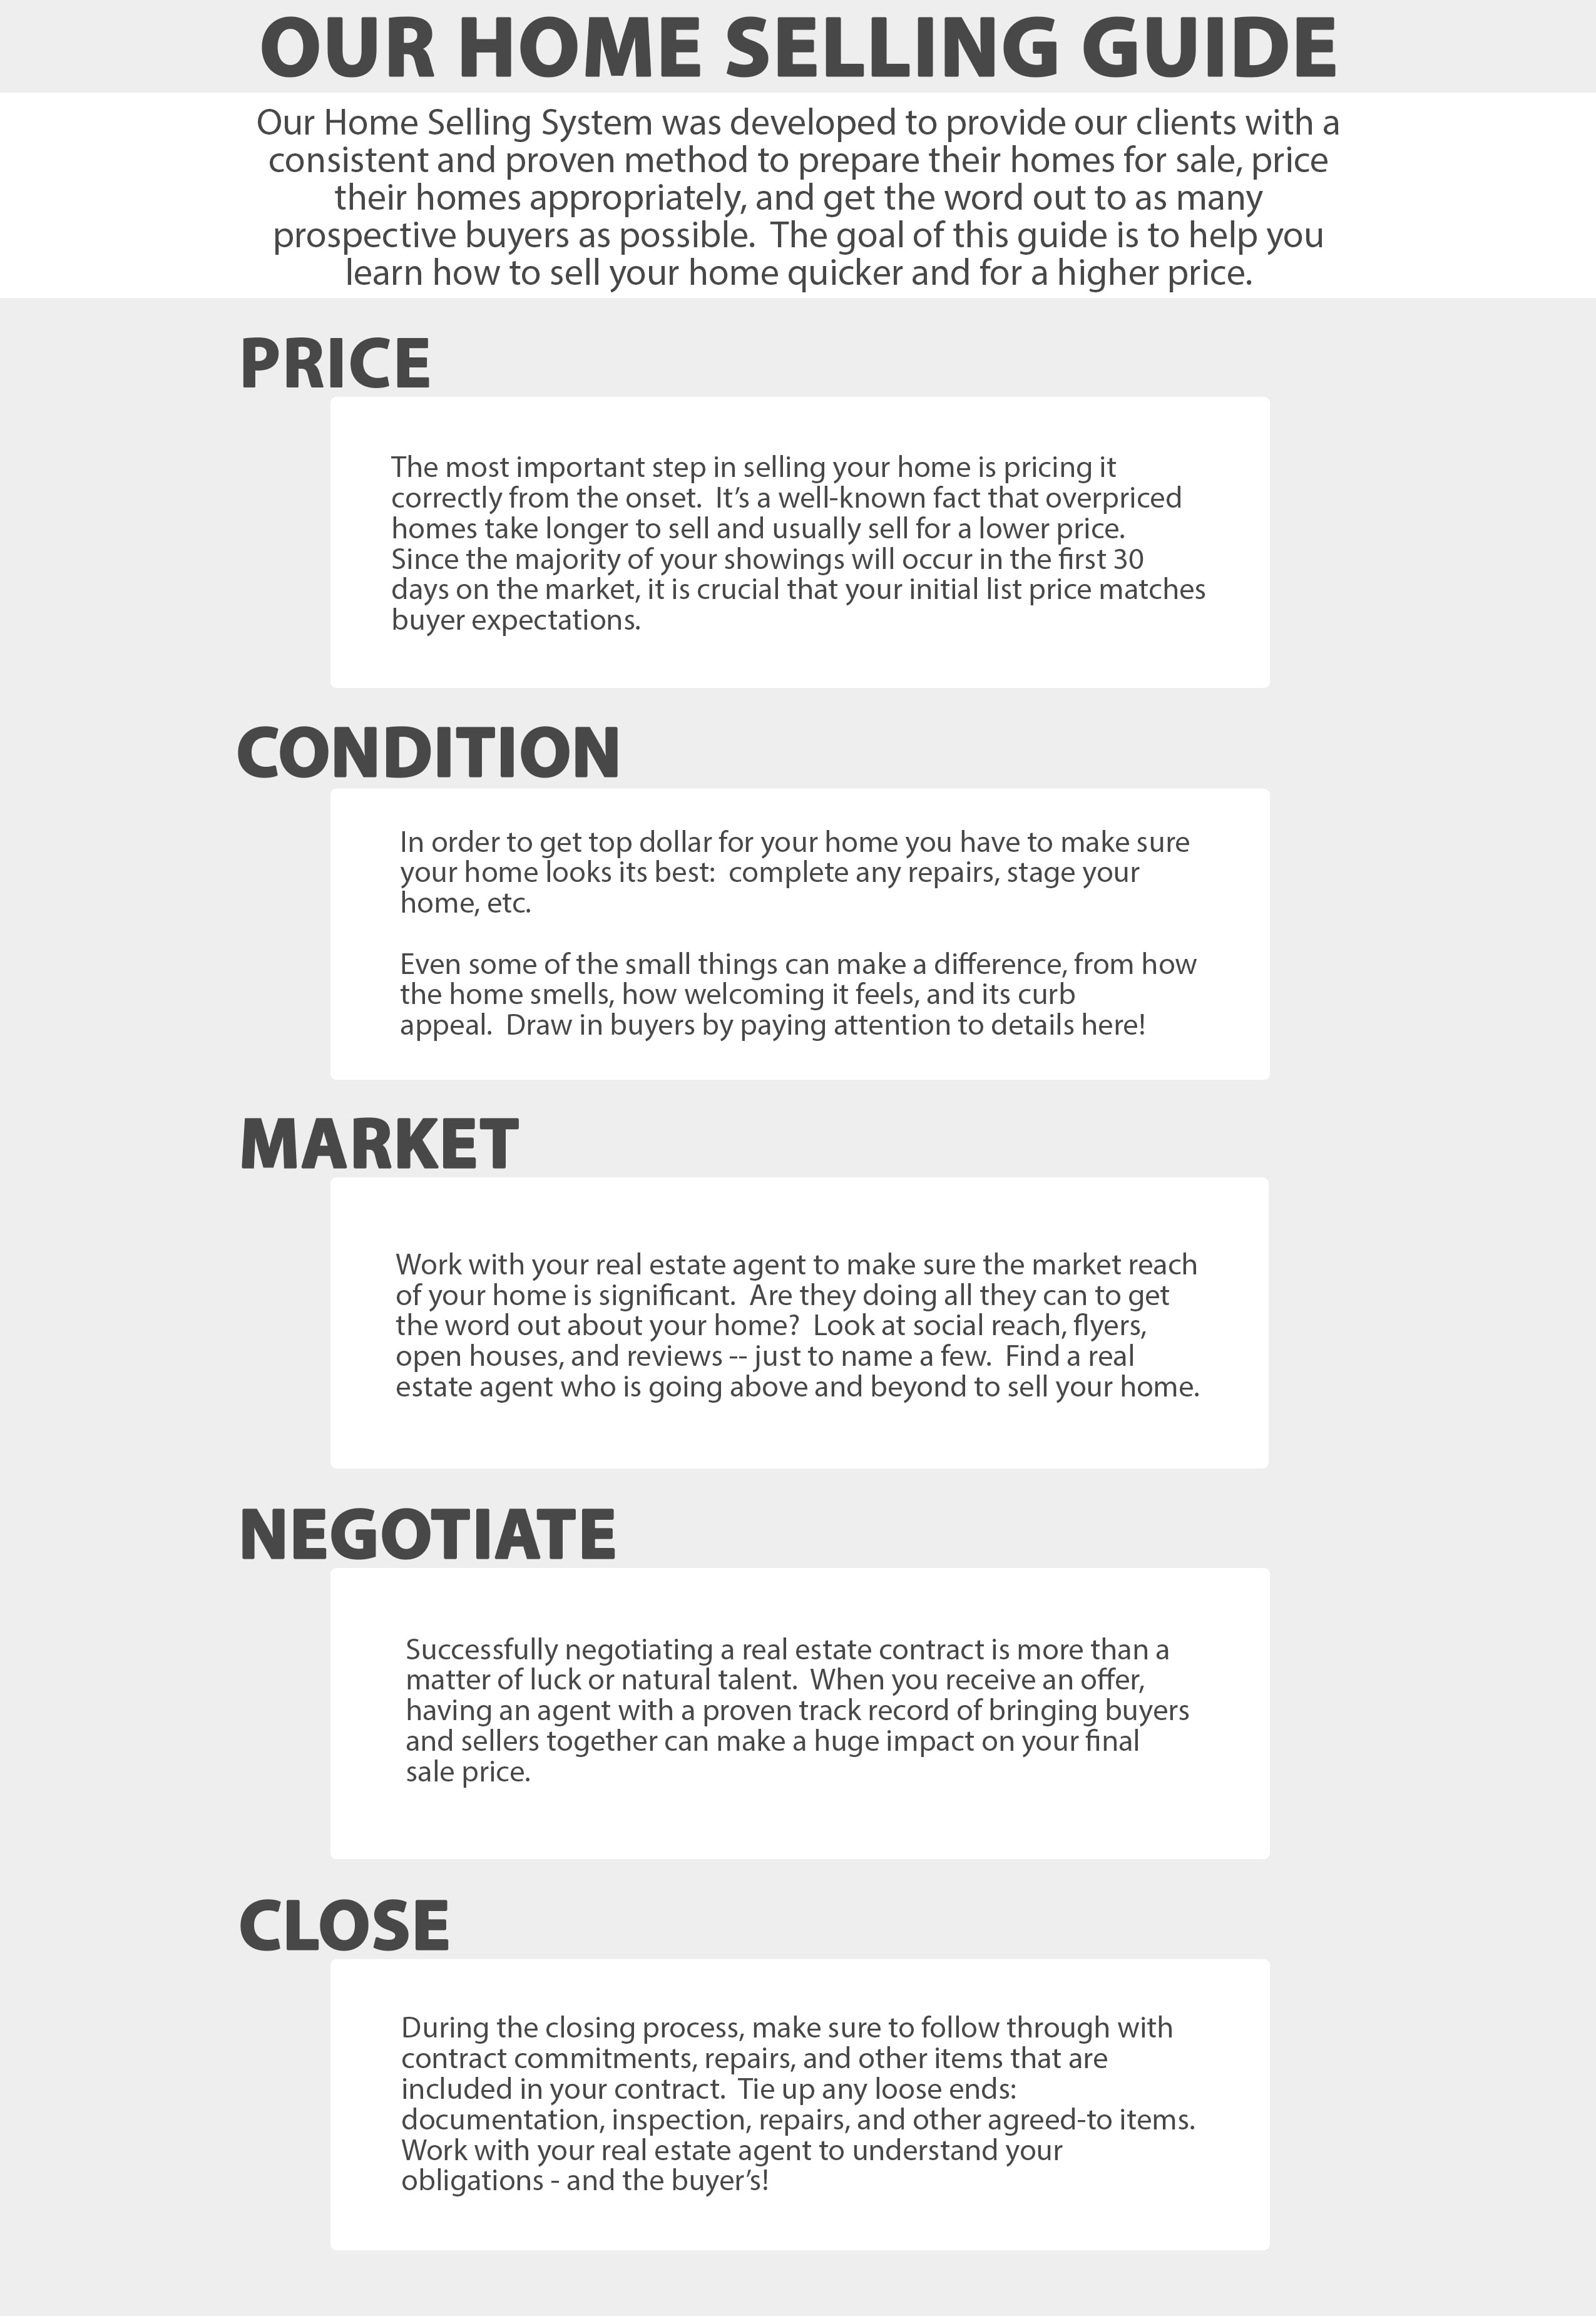 Infographic Selling Guide